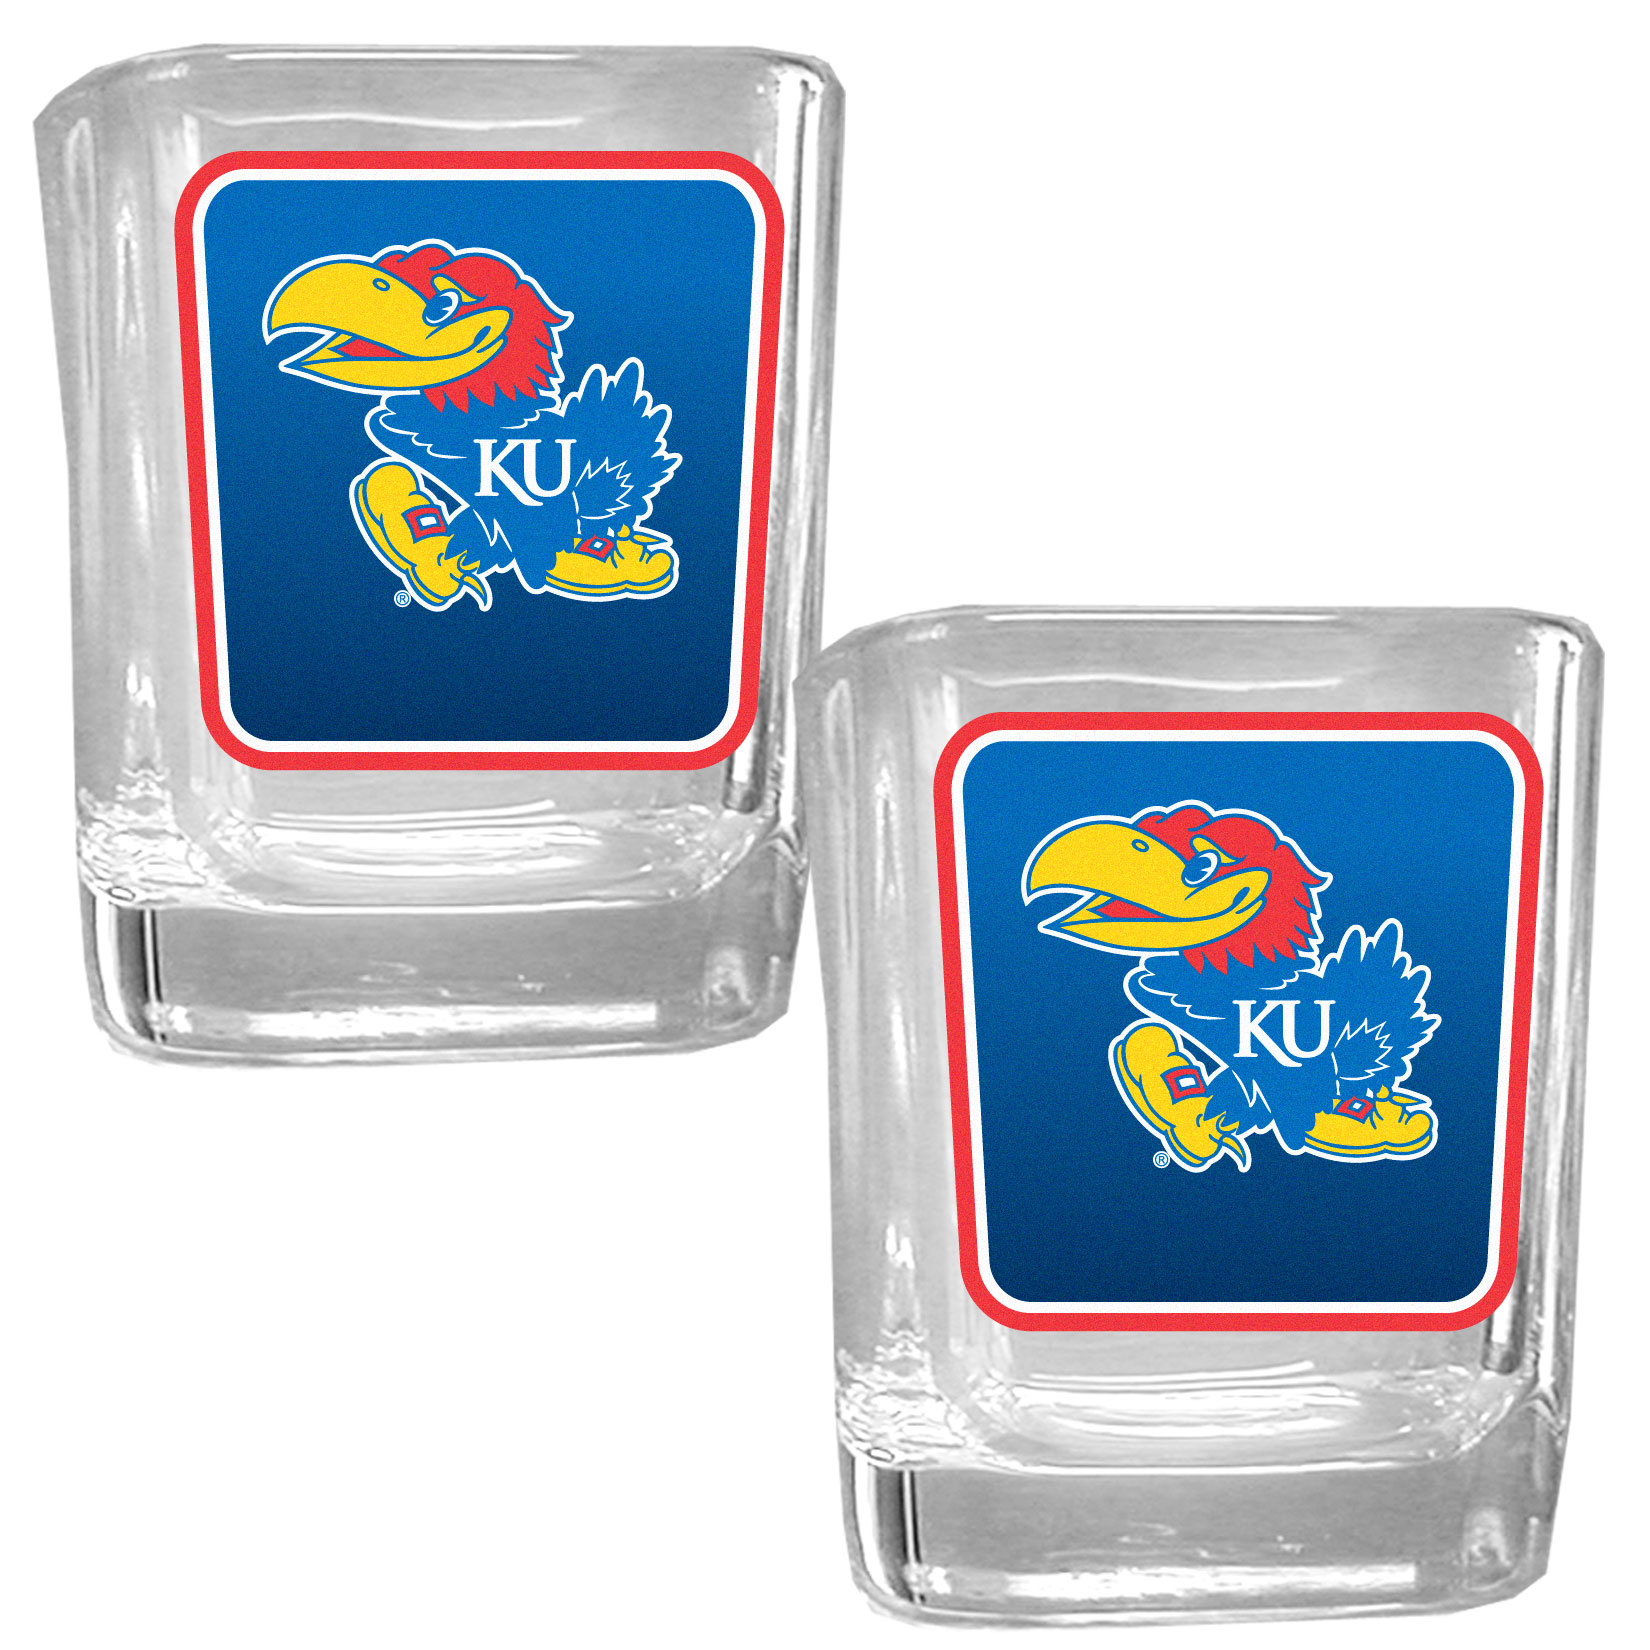 Kansas Jayhawks Square Glass Shot Glass Set - Our glass shot glasses are perfect for collectors or any game day event. The 2 ounce glasses feature bright, vidid digital Kansas Jayhawks graphics. Comes in a set of 2.